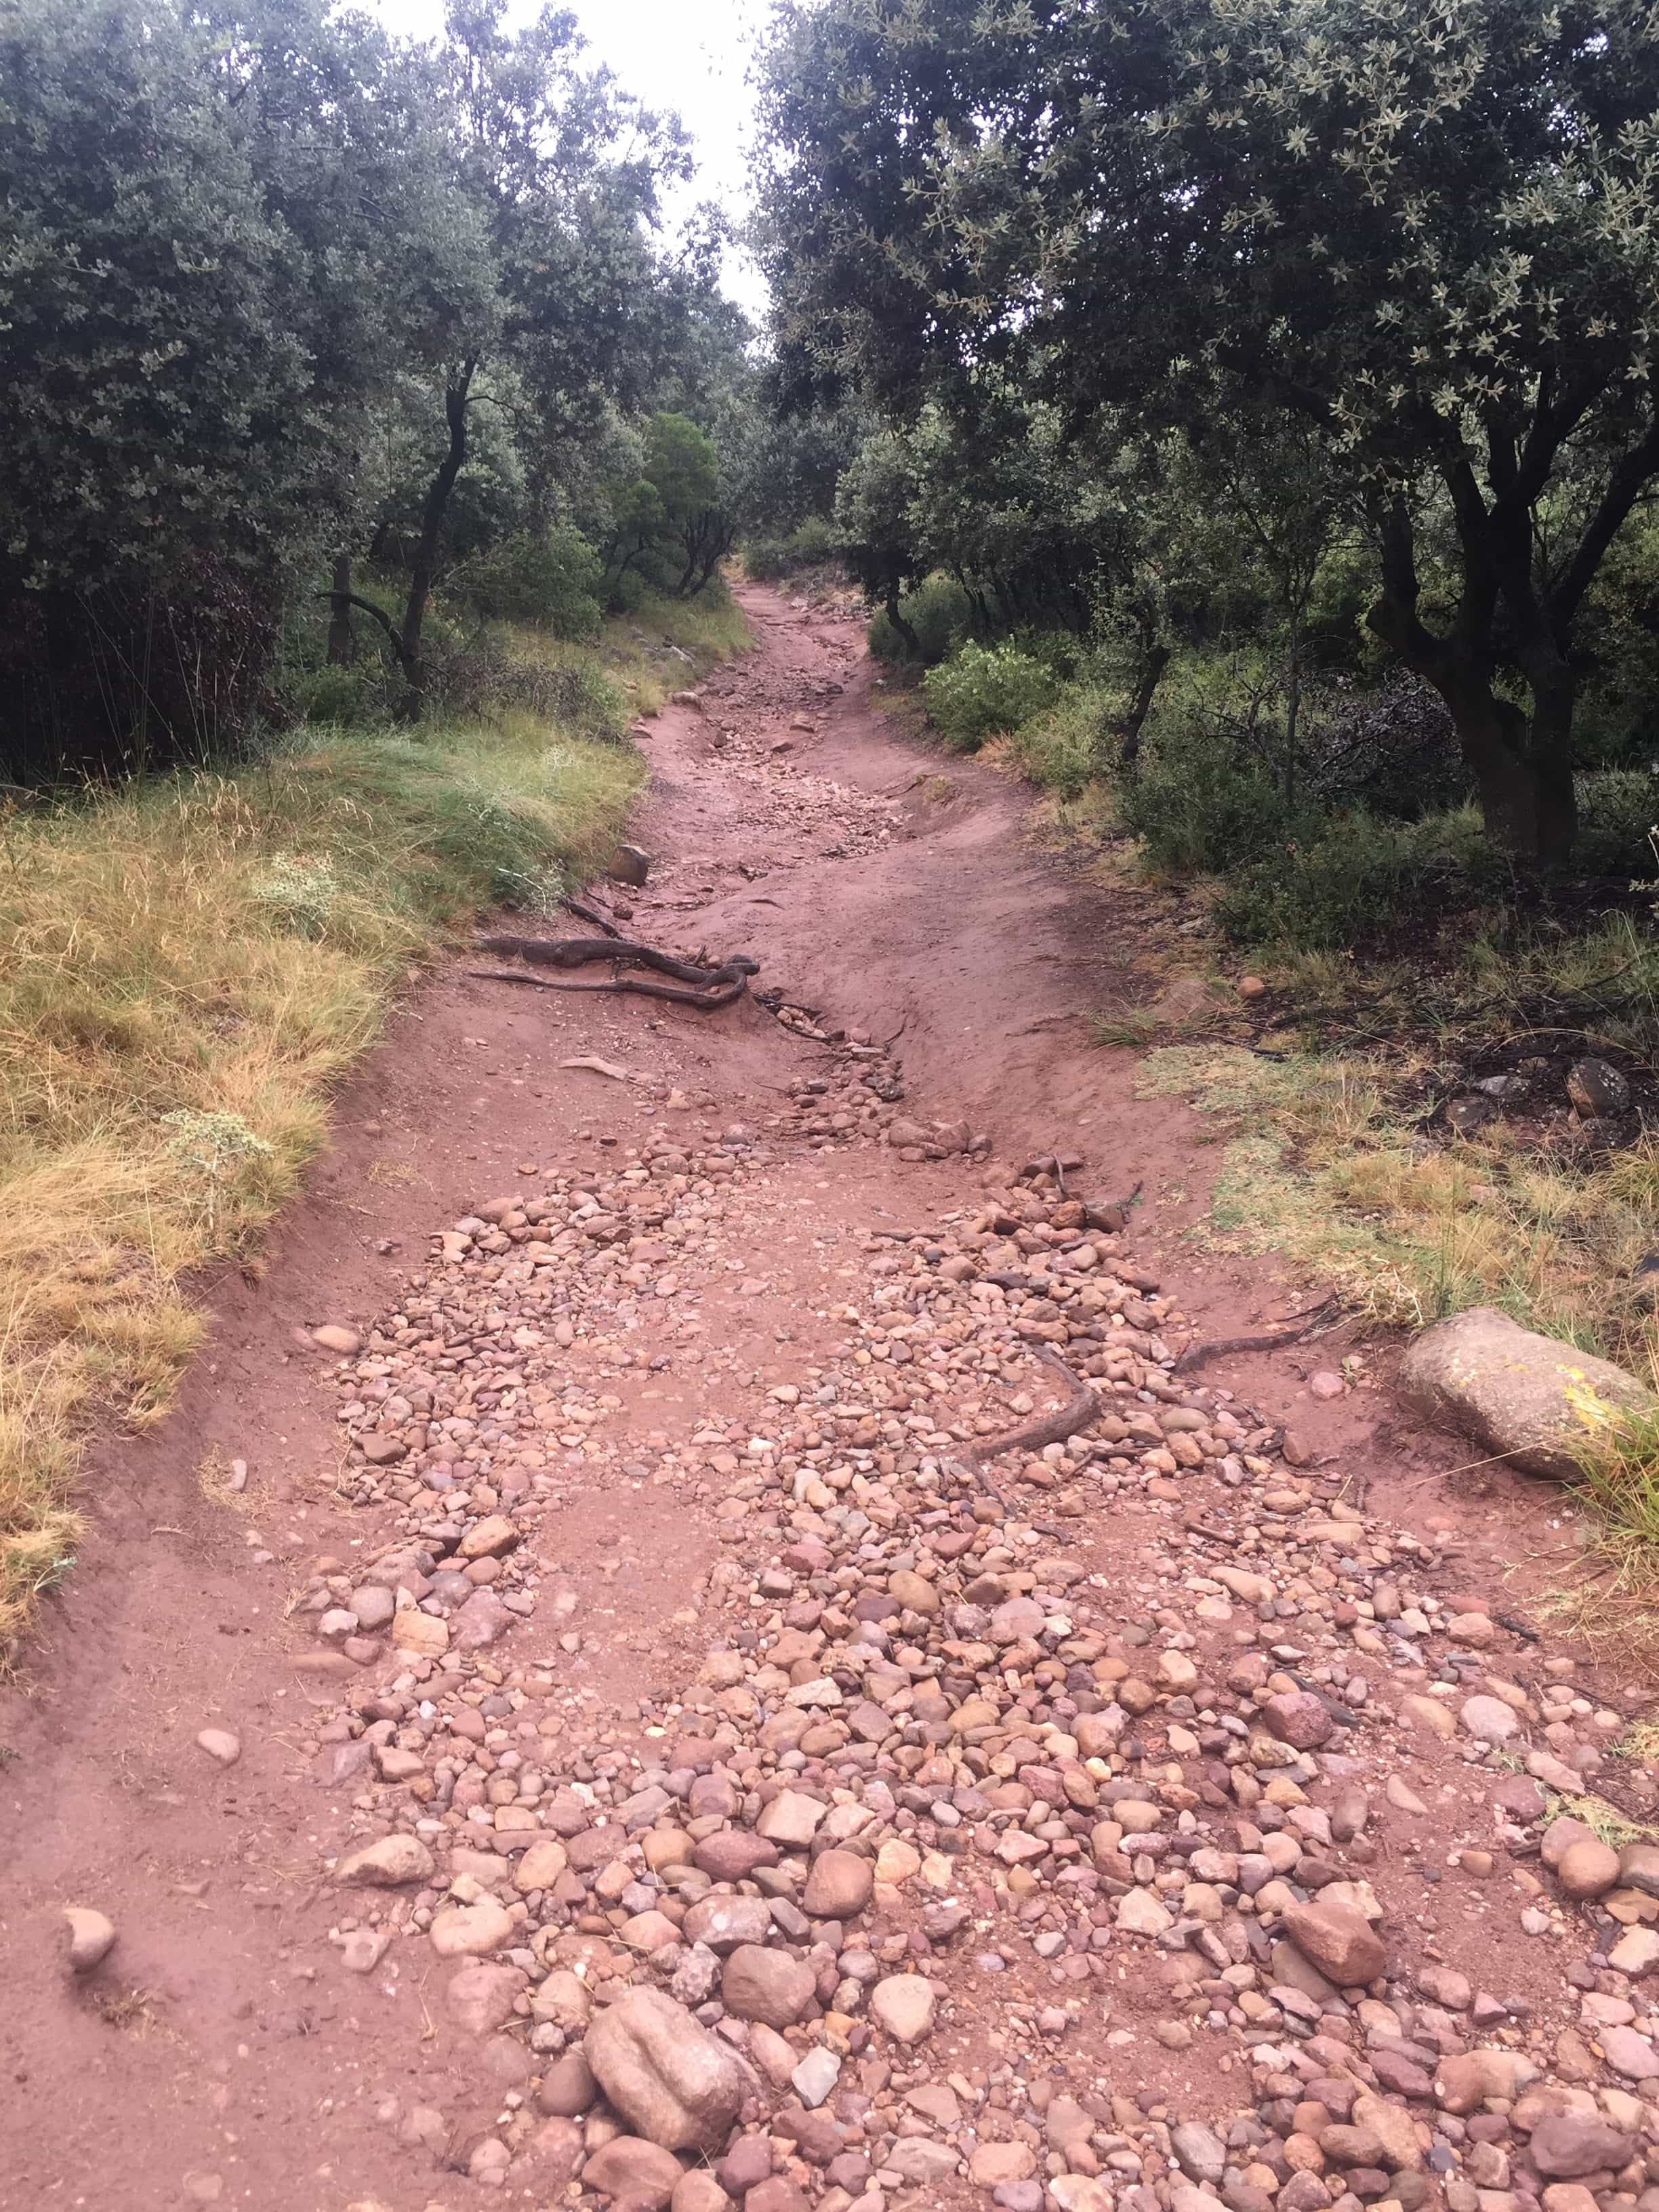 This is the way. Some paths are more like a river bed going uphill